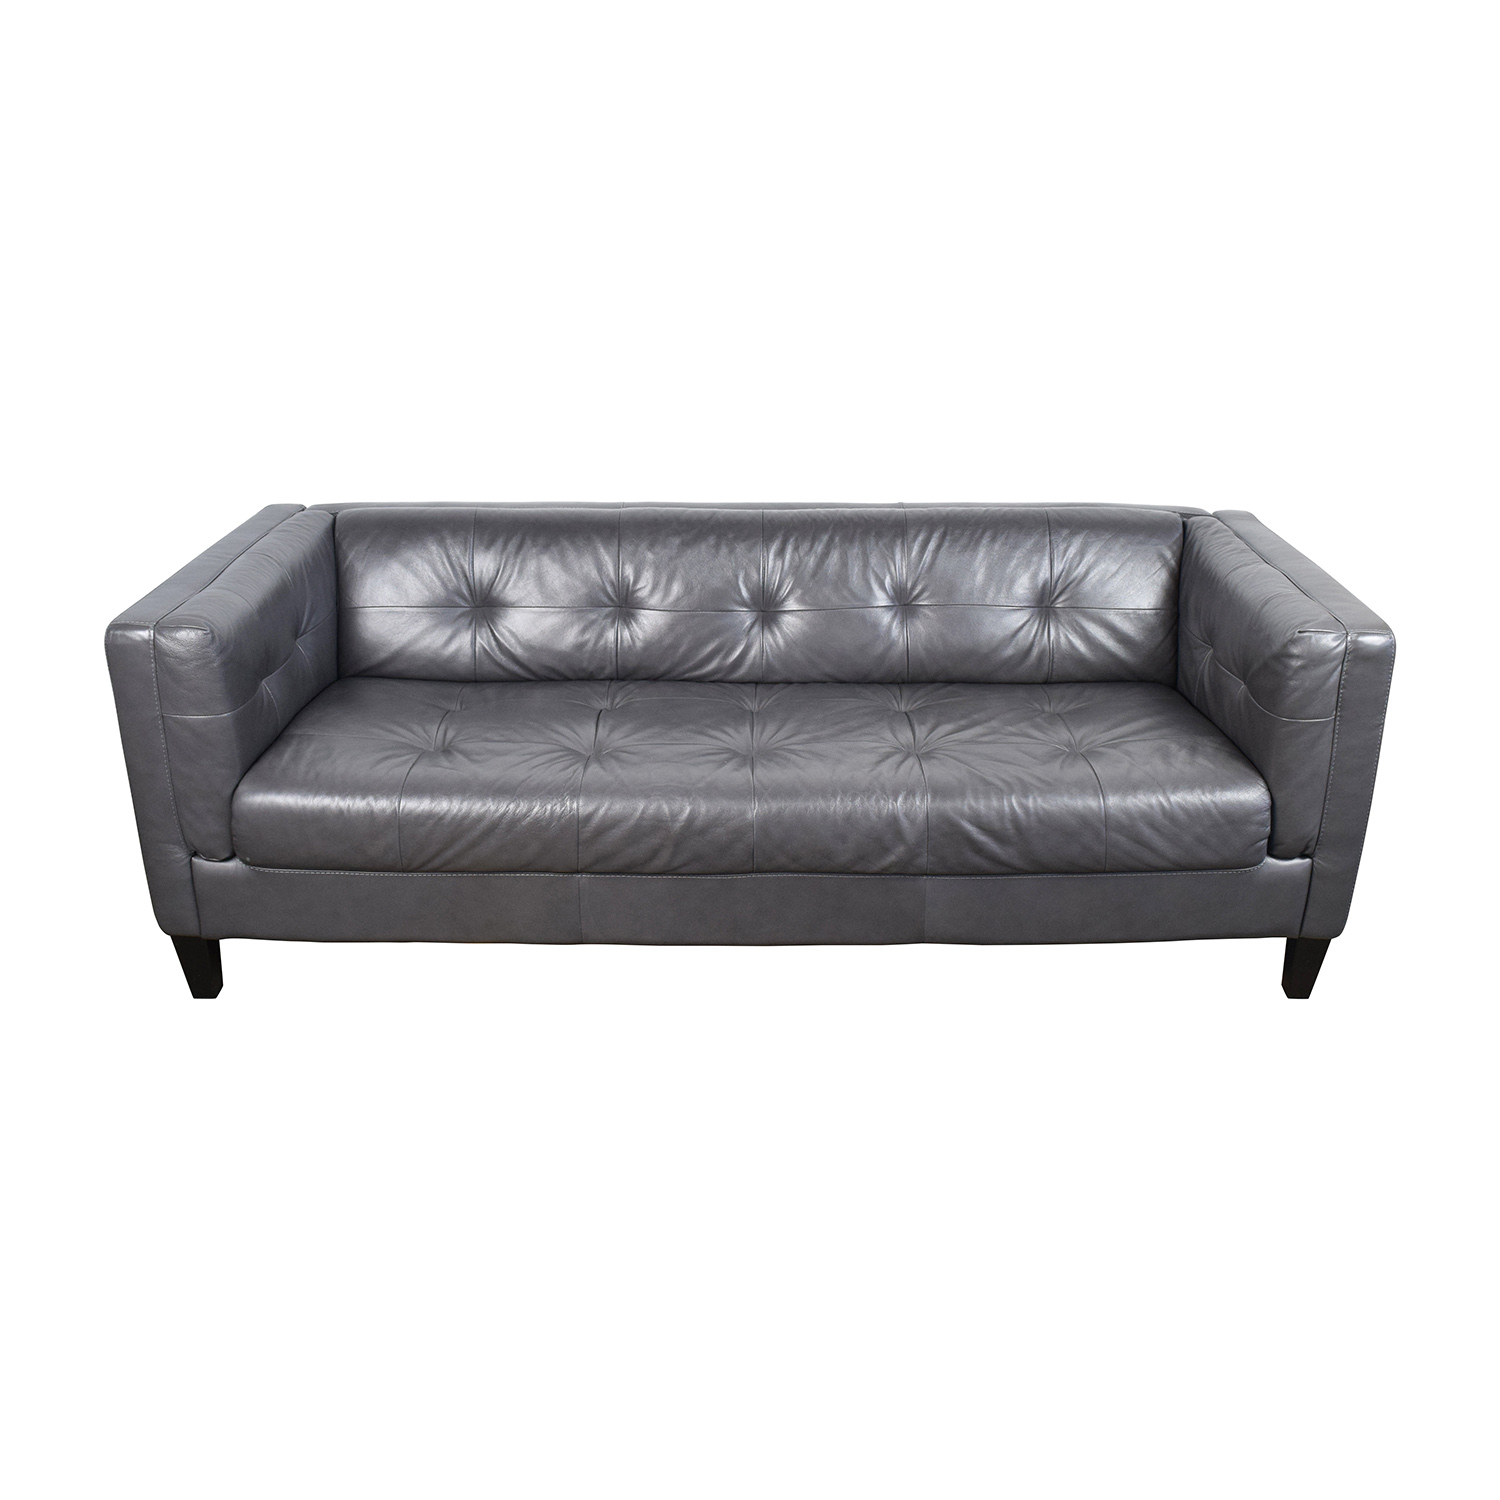 63 off italian navy leather tufted sofa sofas for Tufted leather sleeper sofa